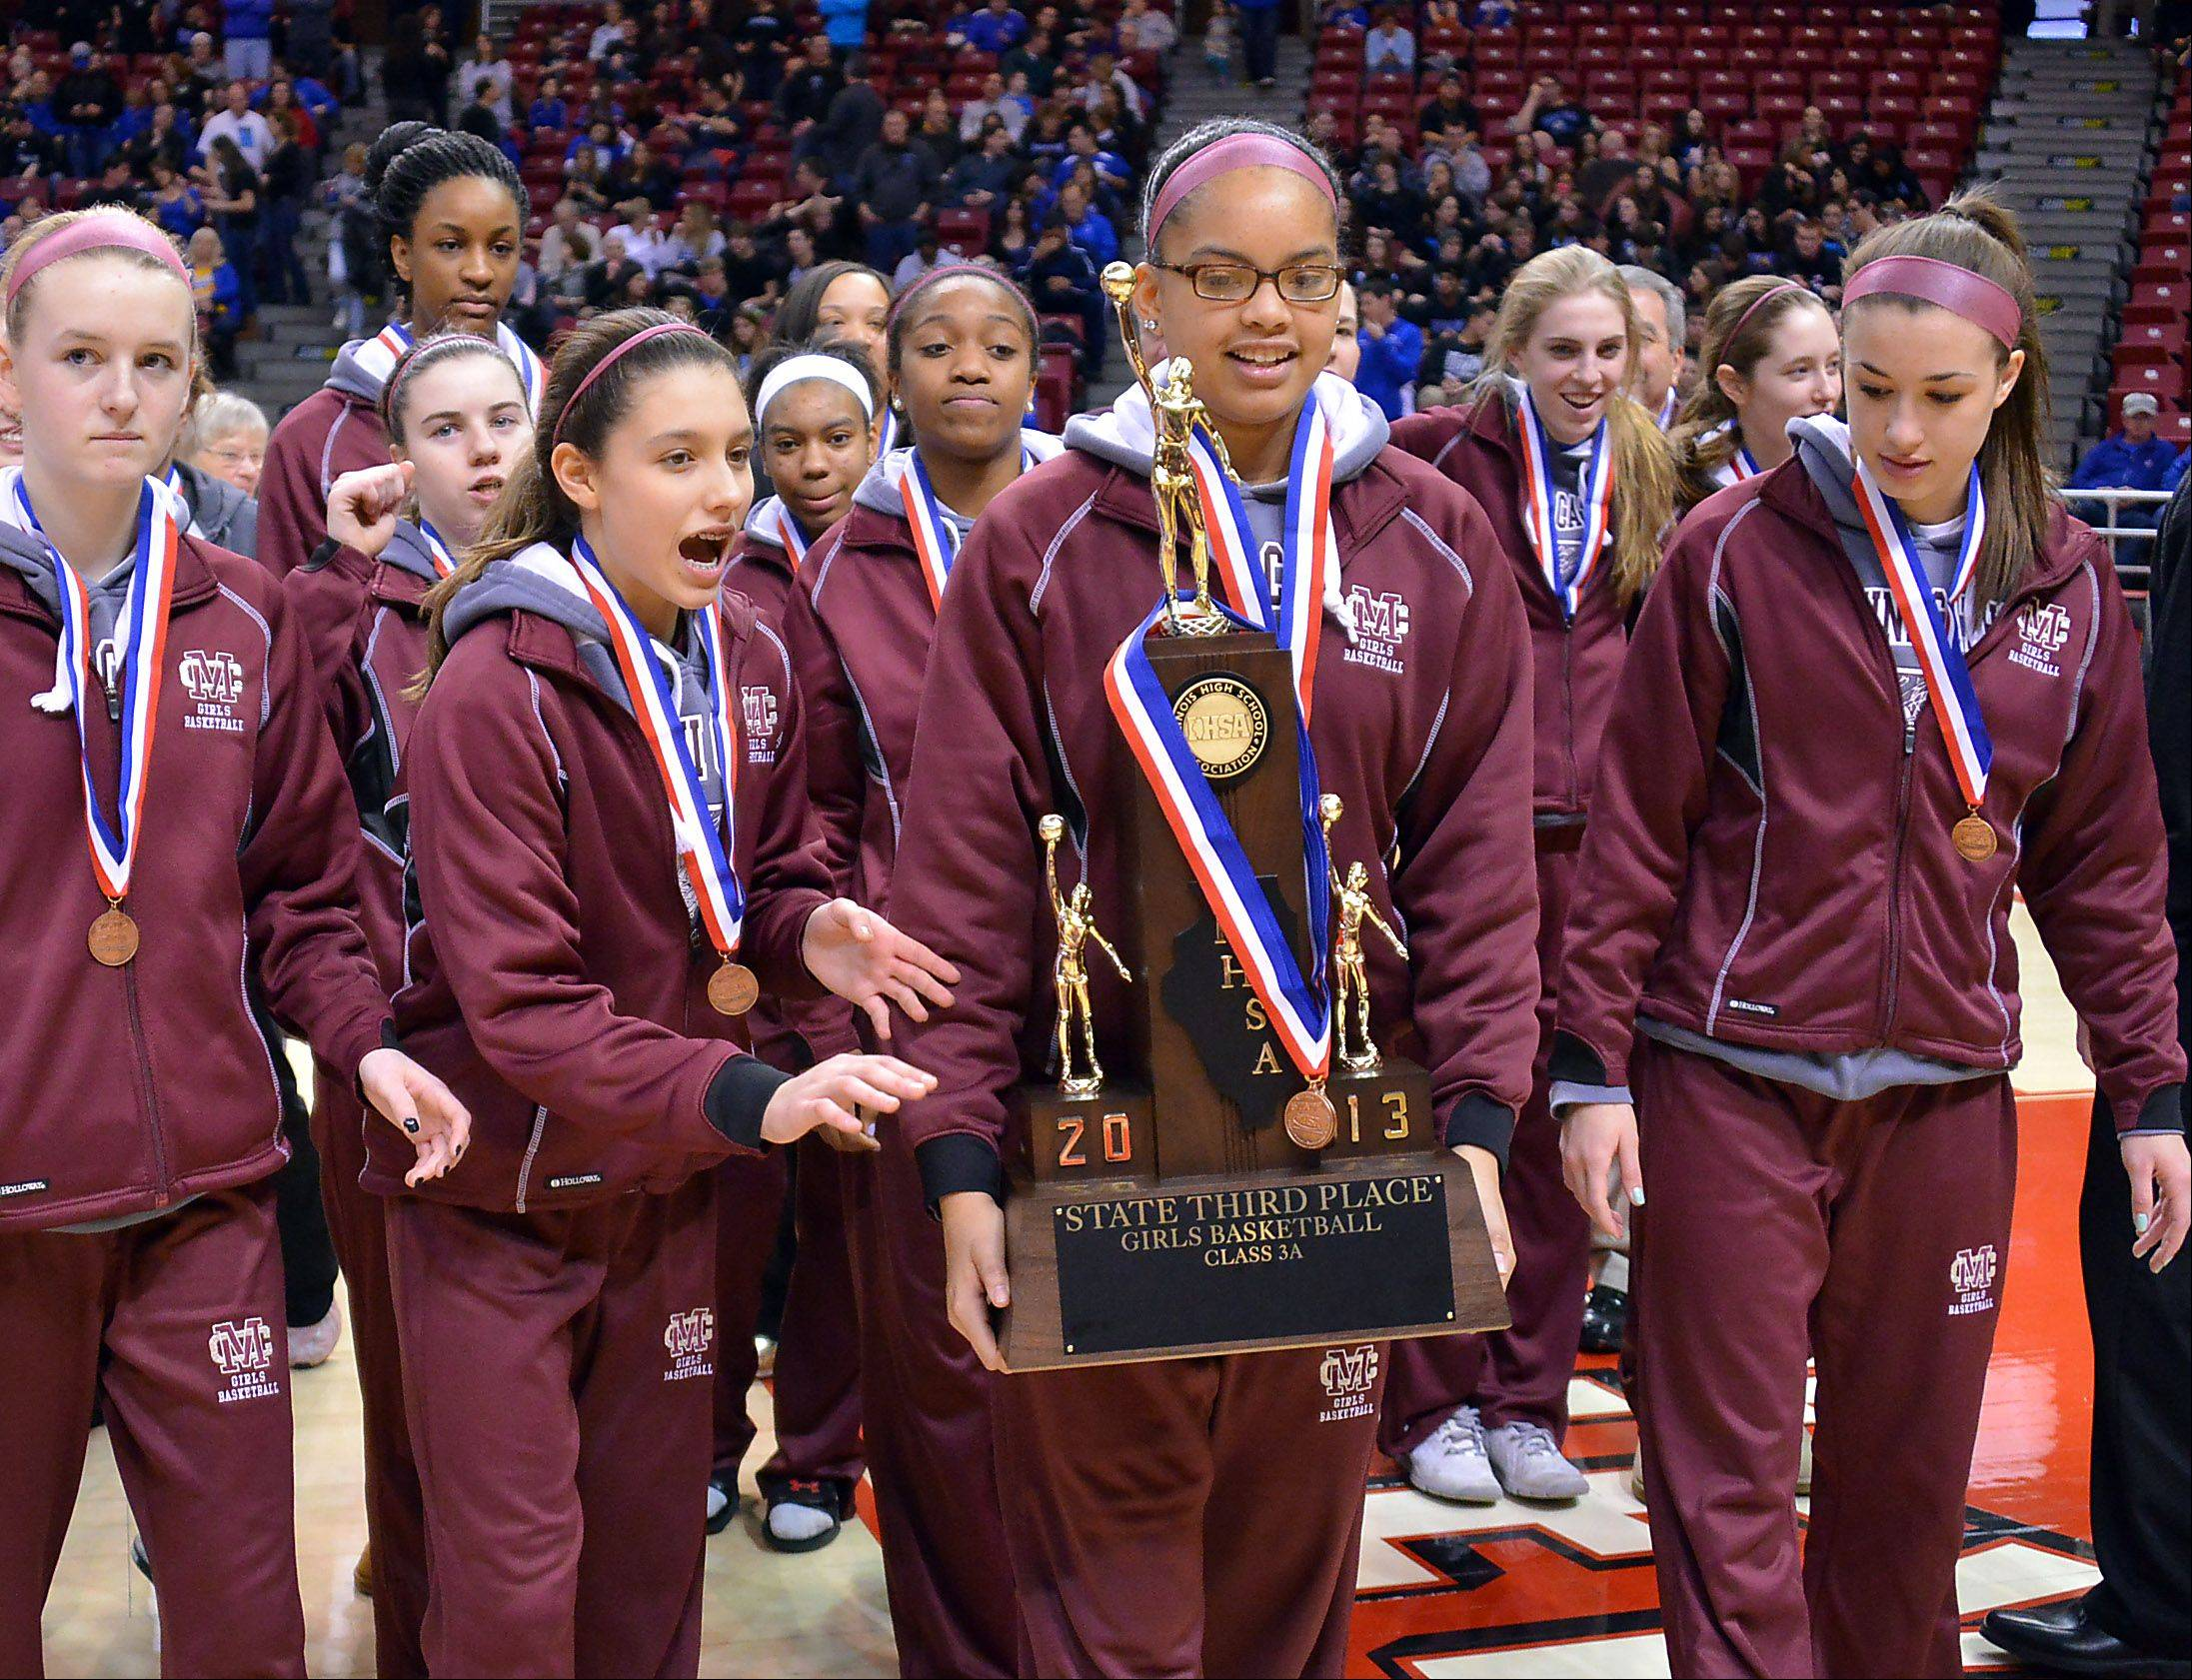 Montini's Rainey Kuykendall and the rest of her teammates carry off the third place trophy in the Class 3A girls state basketball third place game in Normal on Saturday.